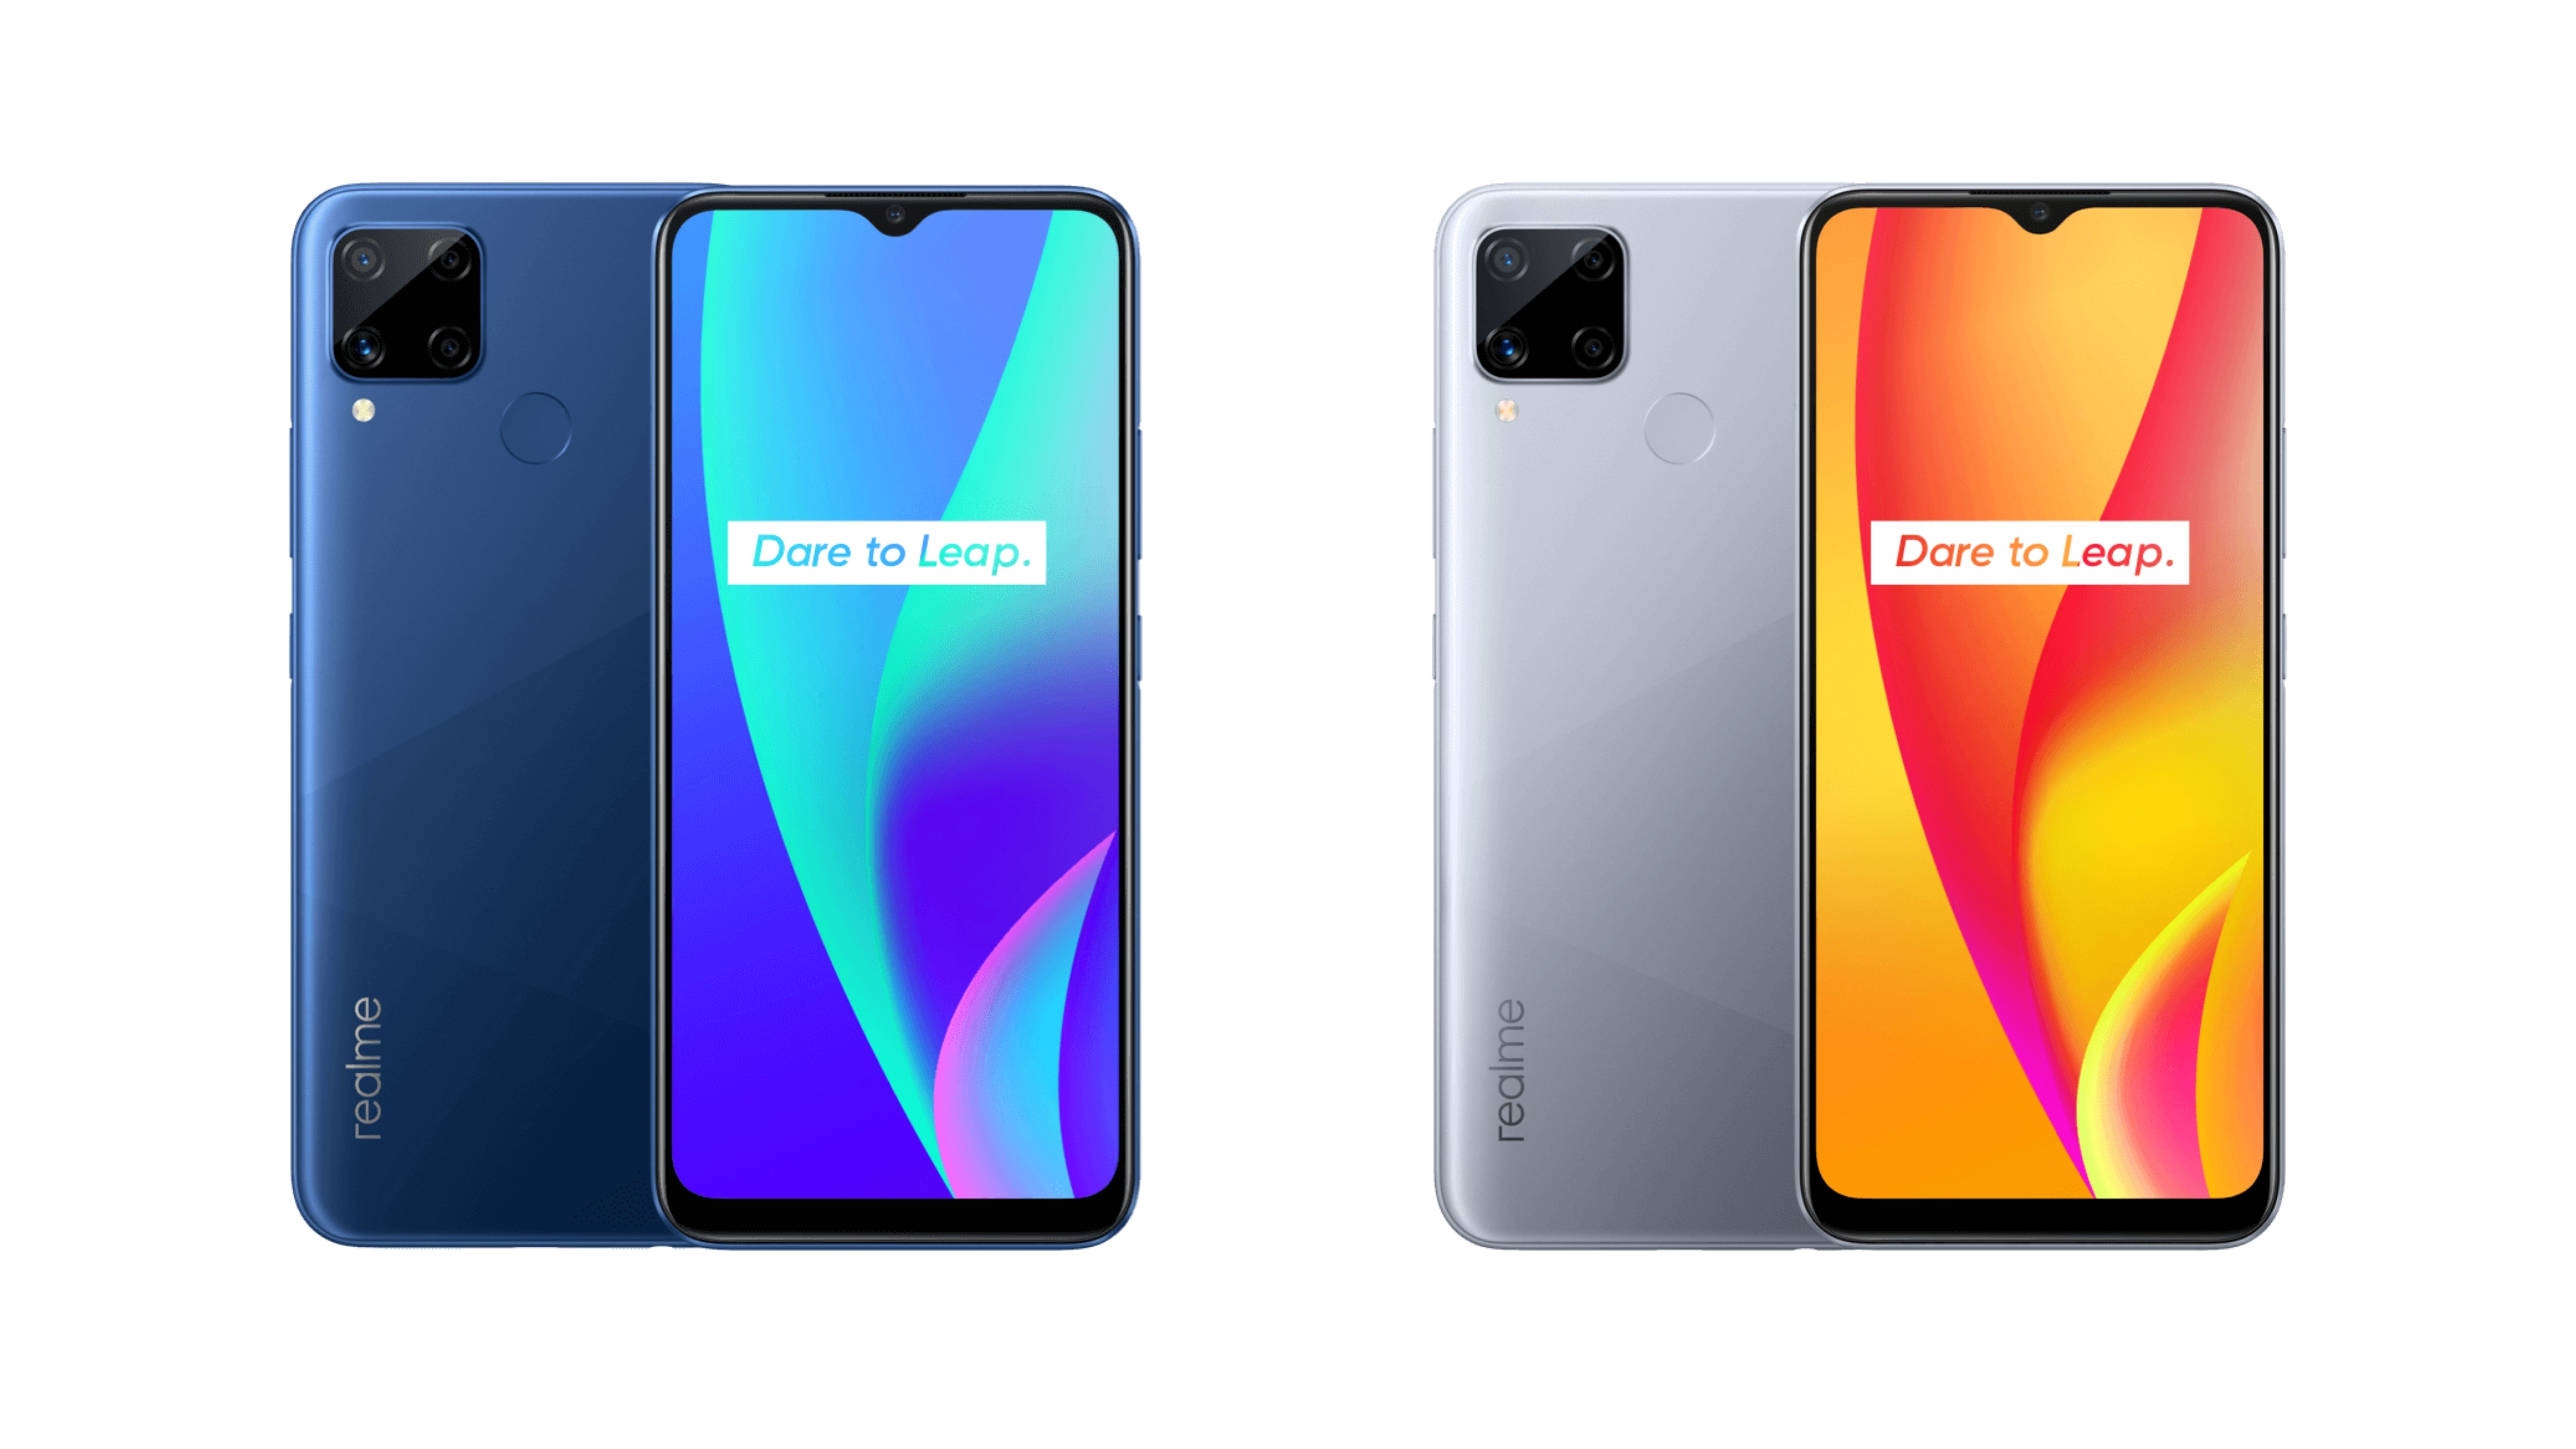 Realme C12, Realme C15 to launch in India on August 18